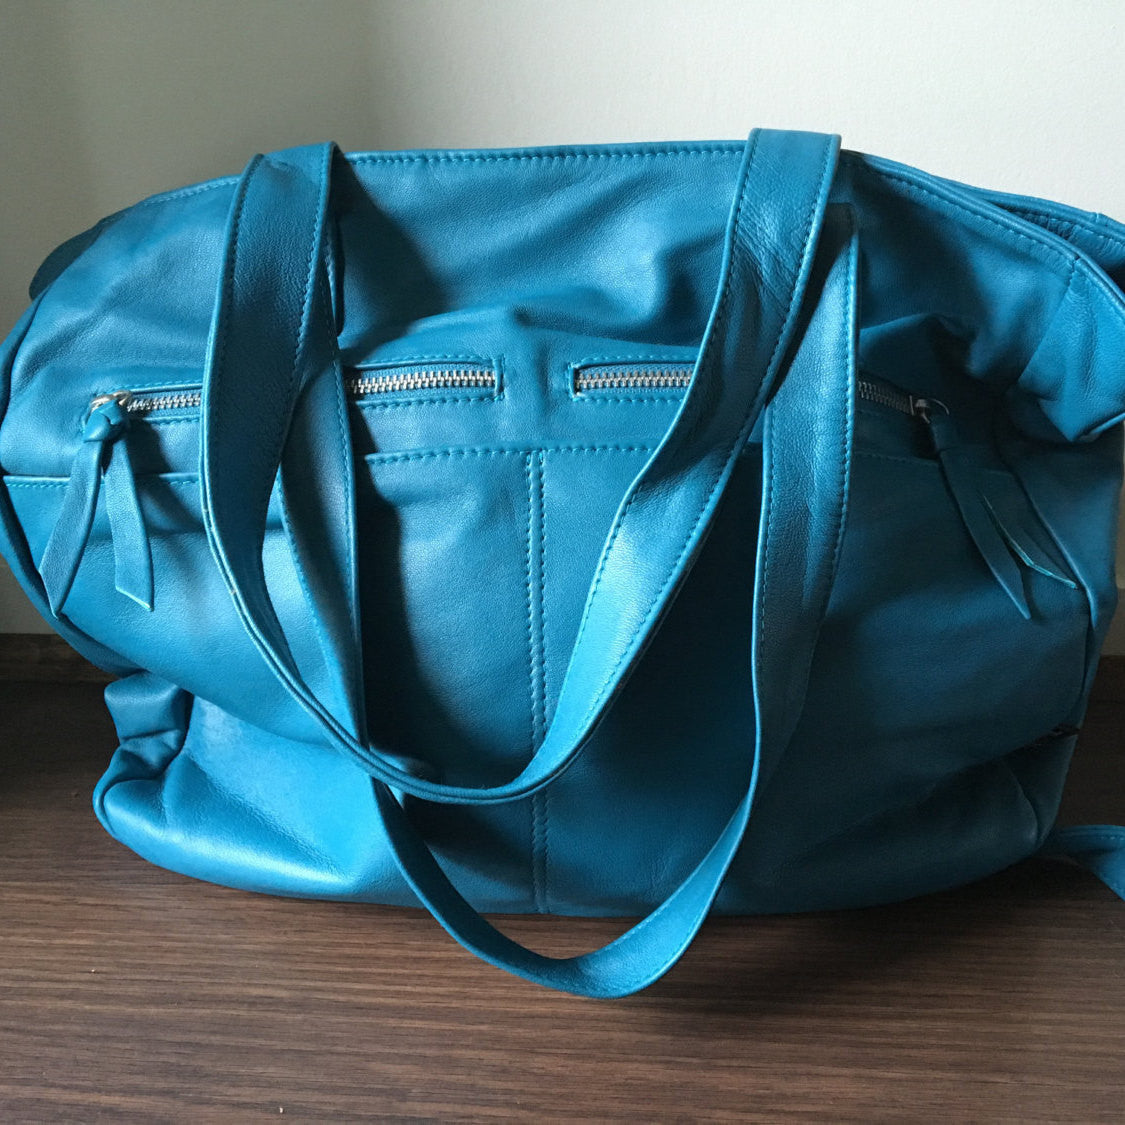 The Envoyage - Large, leather tote, generous handbag.